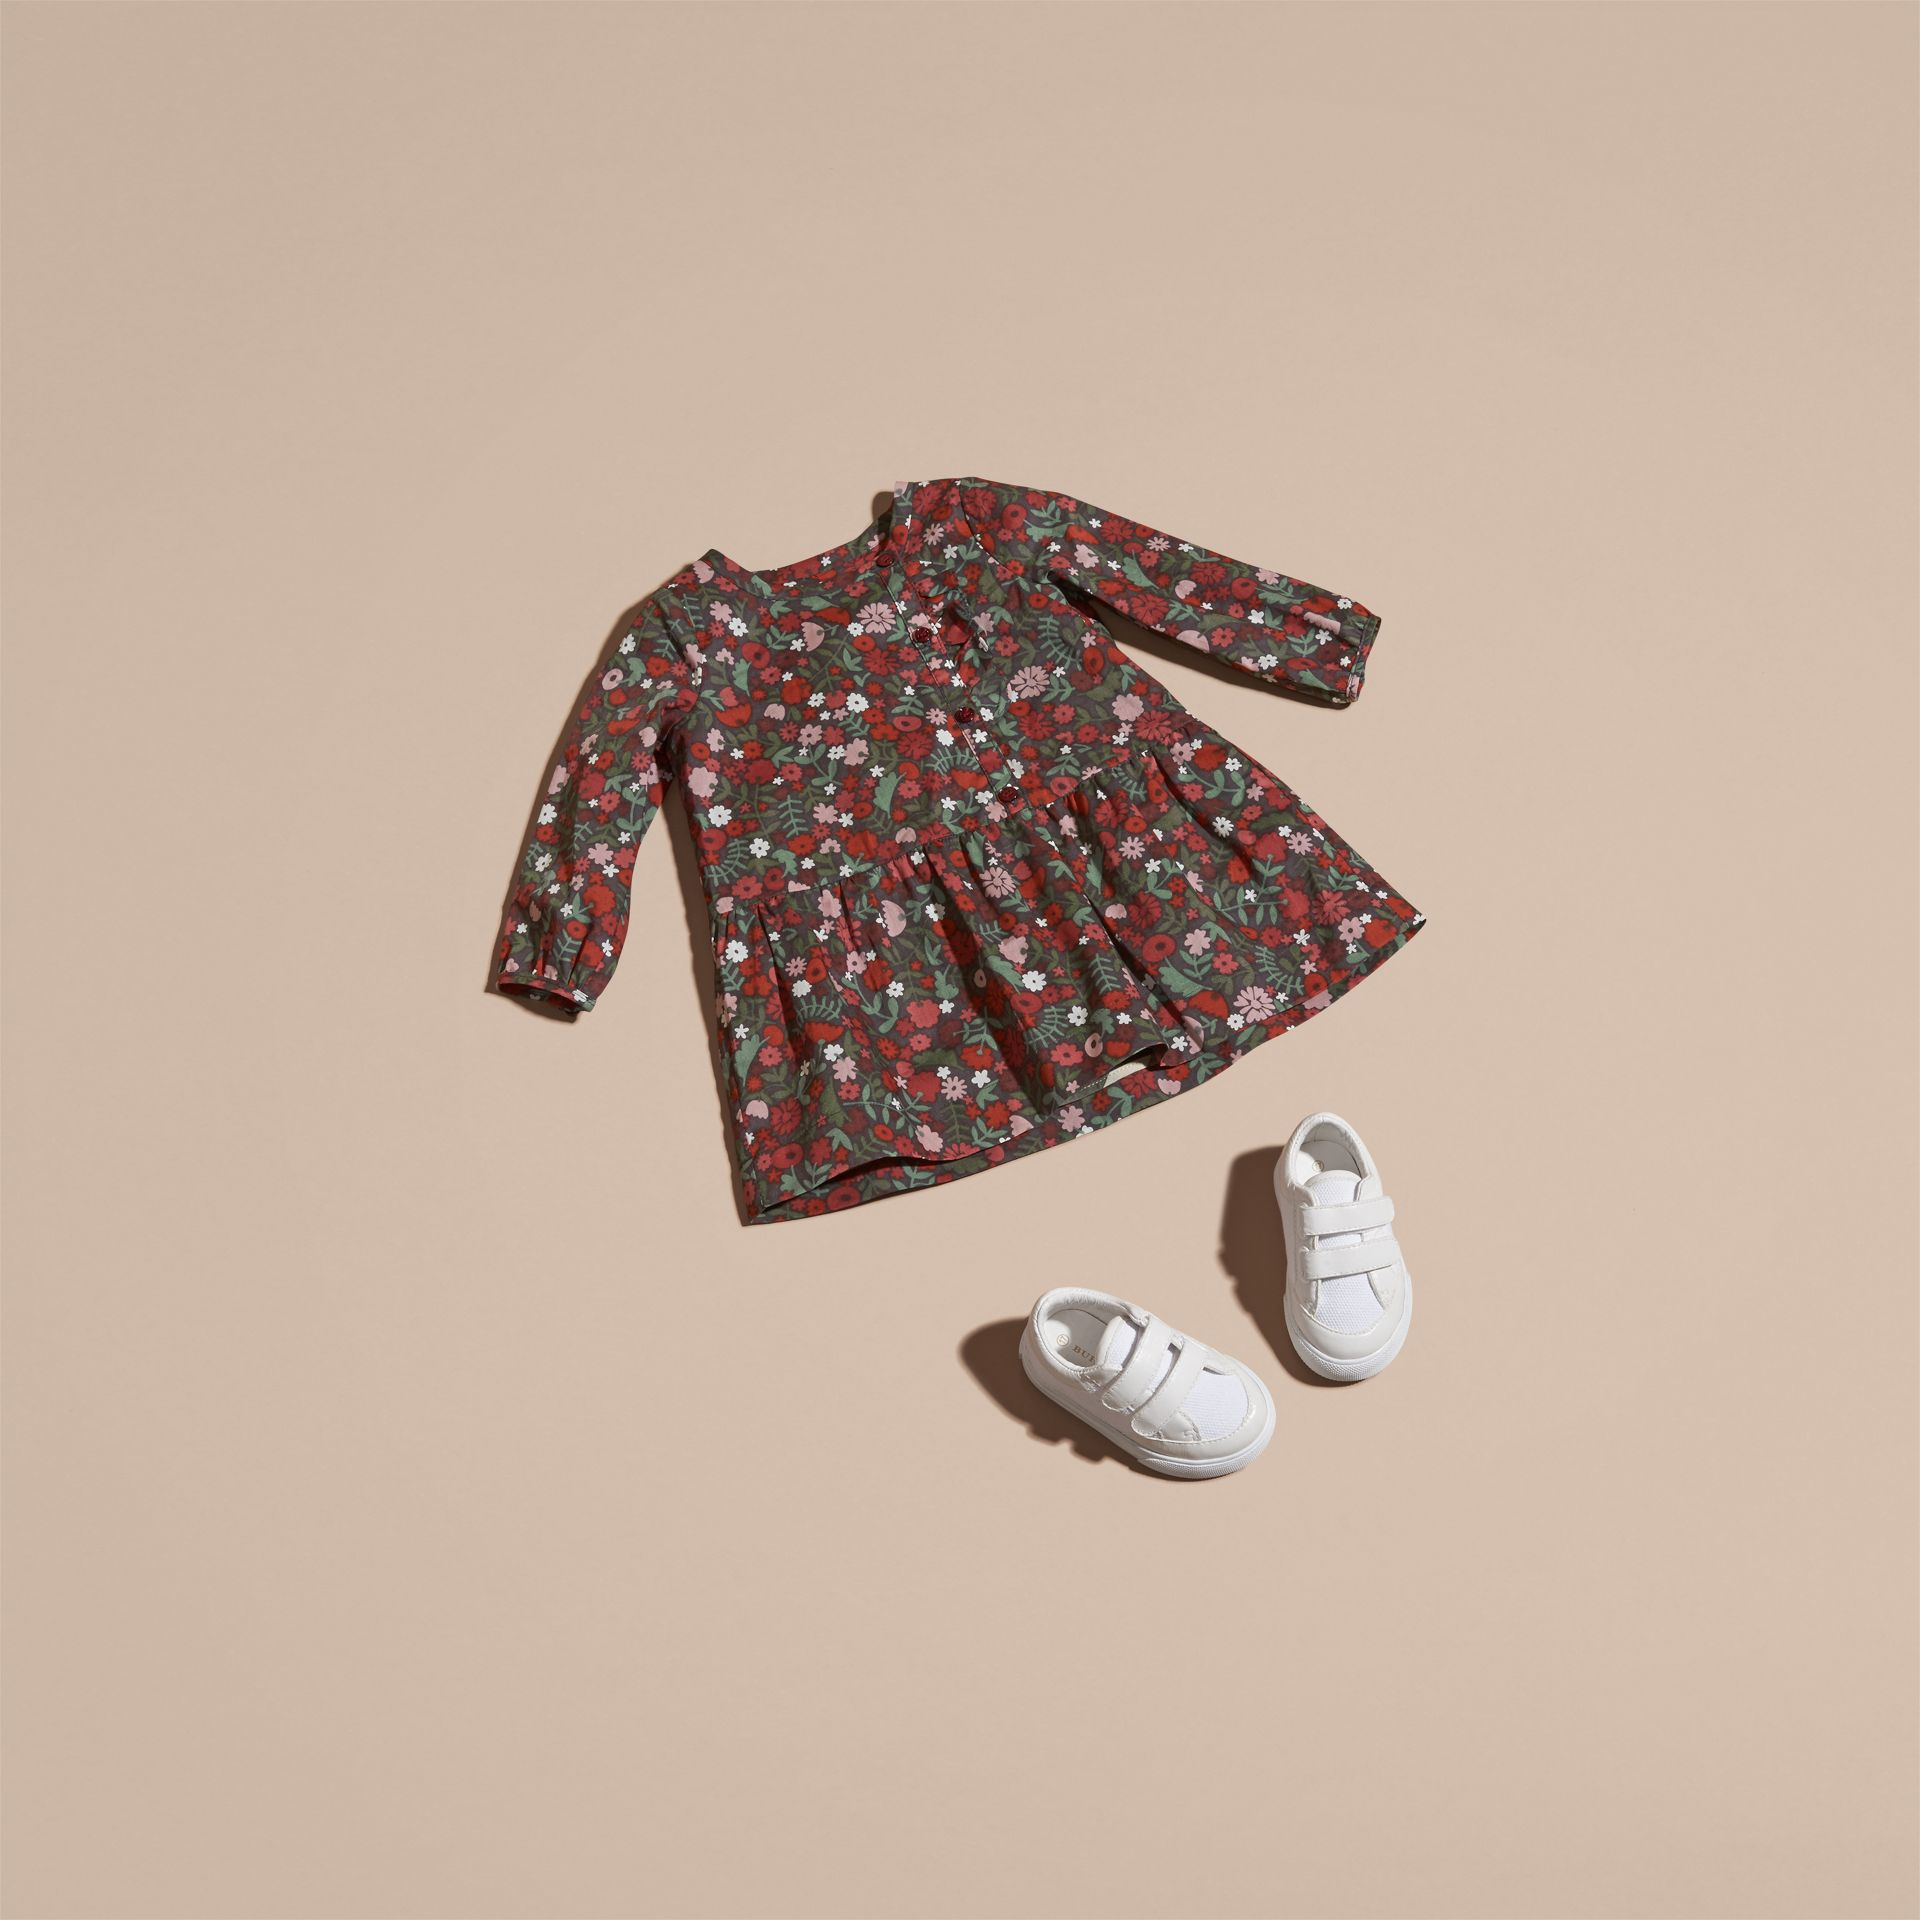 Blush antique Robe en coton à imprimé floral avec volants - photo de la galerie 5